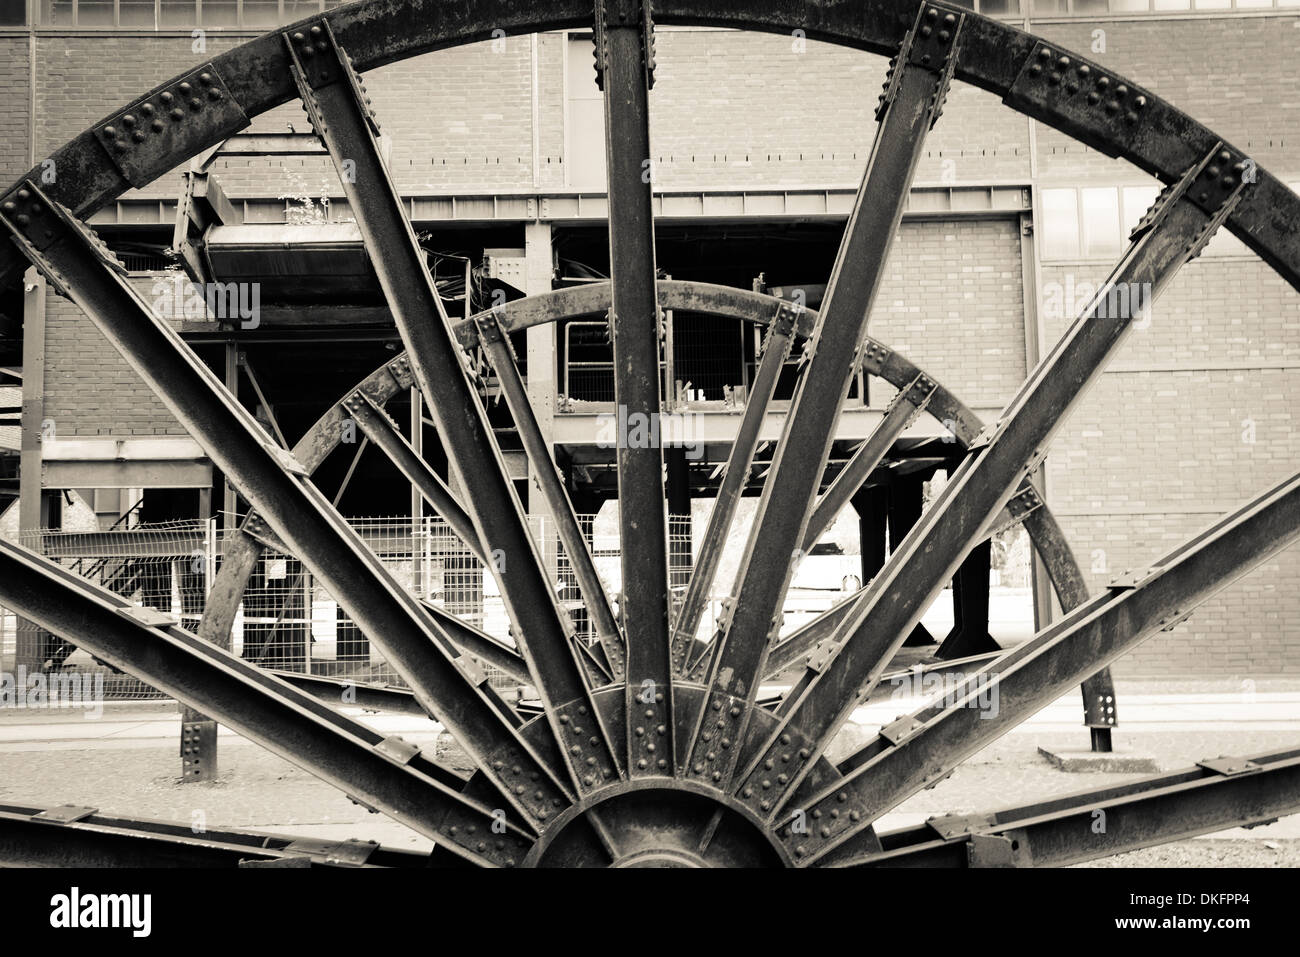 Driving wheels, Zeche Zollverein, Essen, North Rhine-Westphalia, Germany, Europe - Stock Image